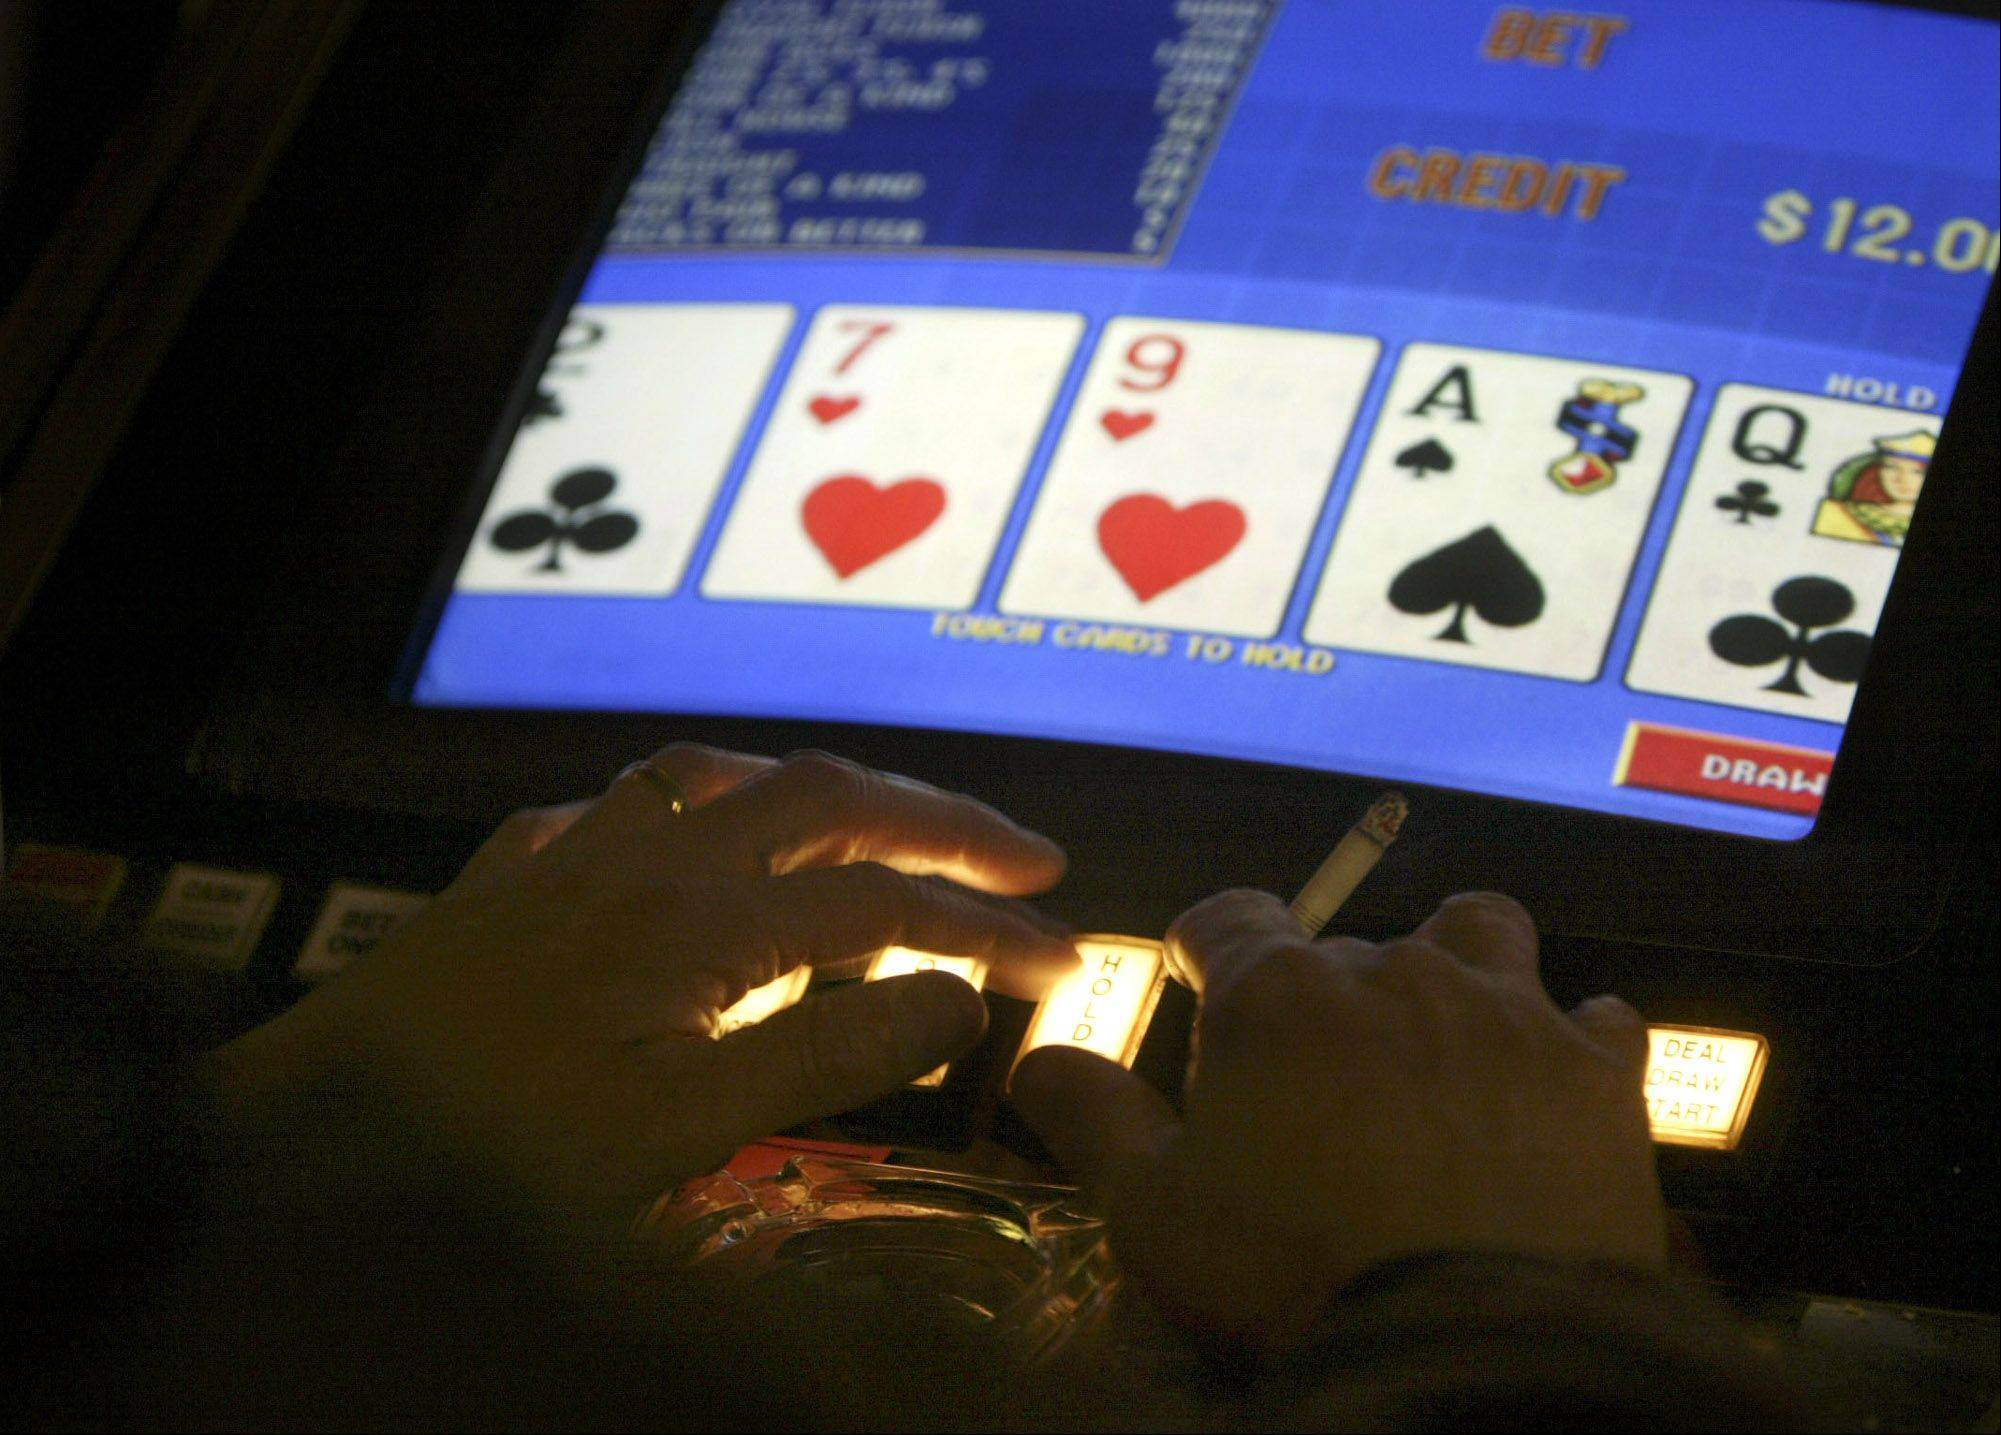 Huntley hopes to gain $100,000 from video gambling